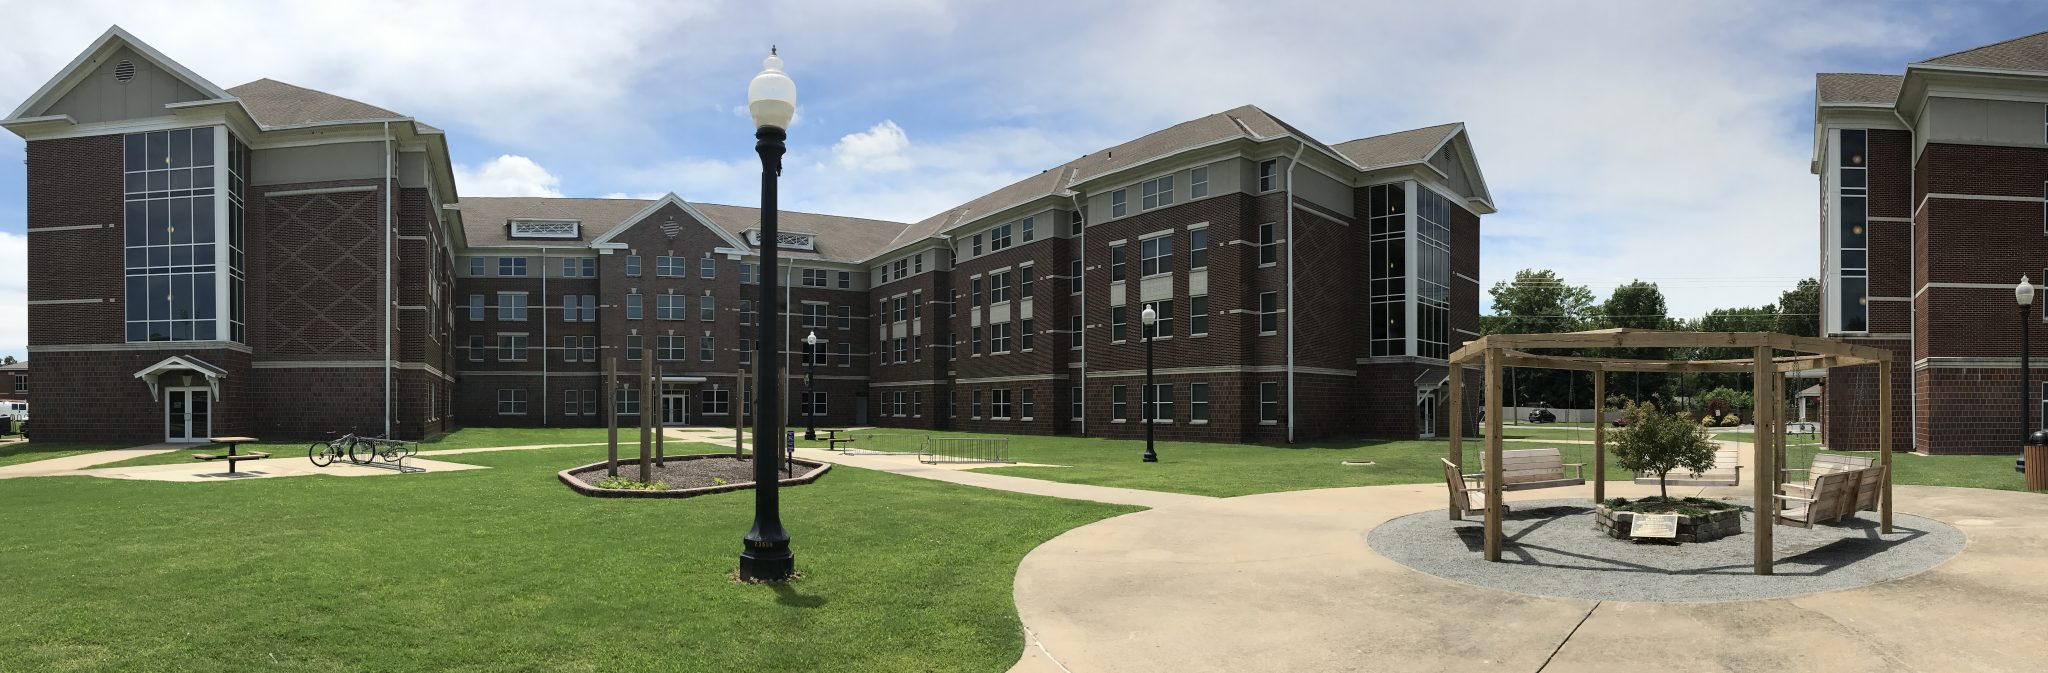 Farris Hall courtyard